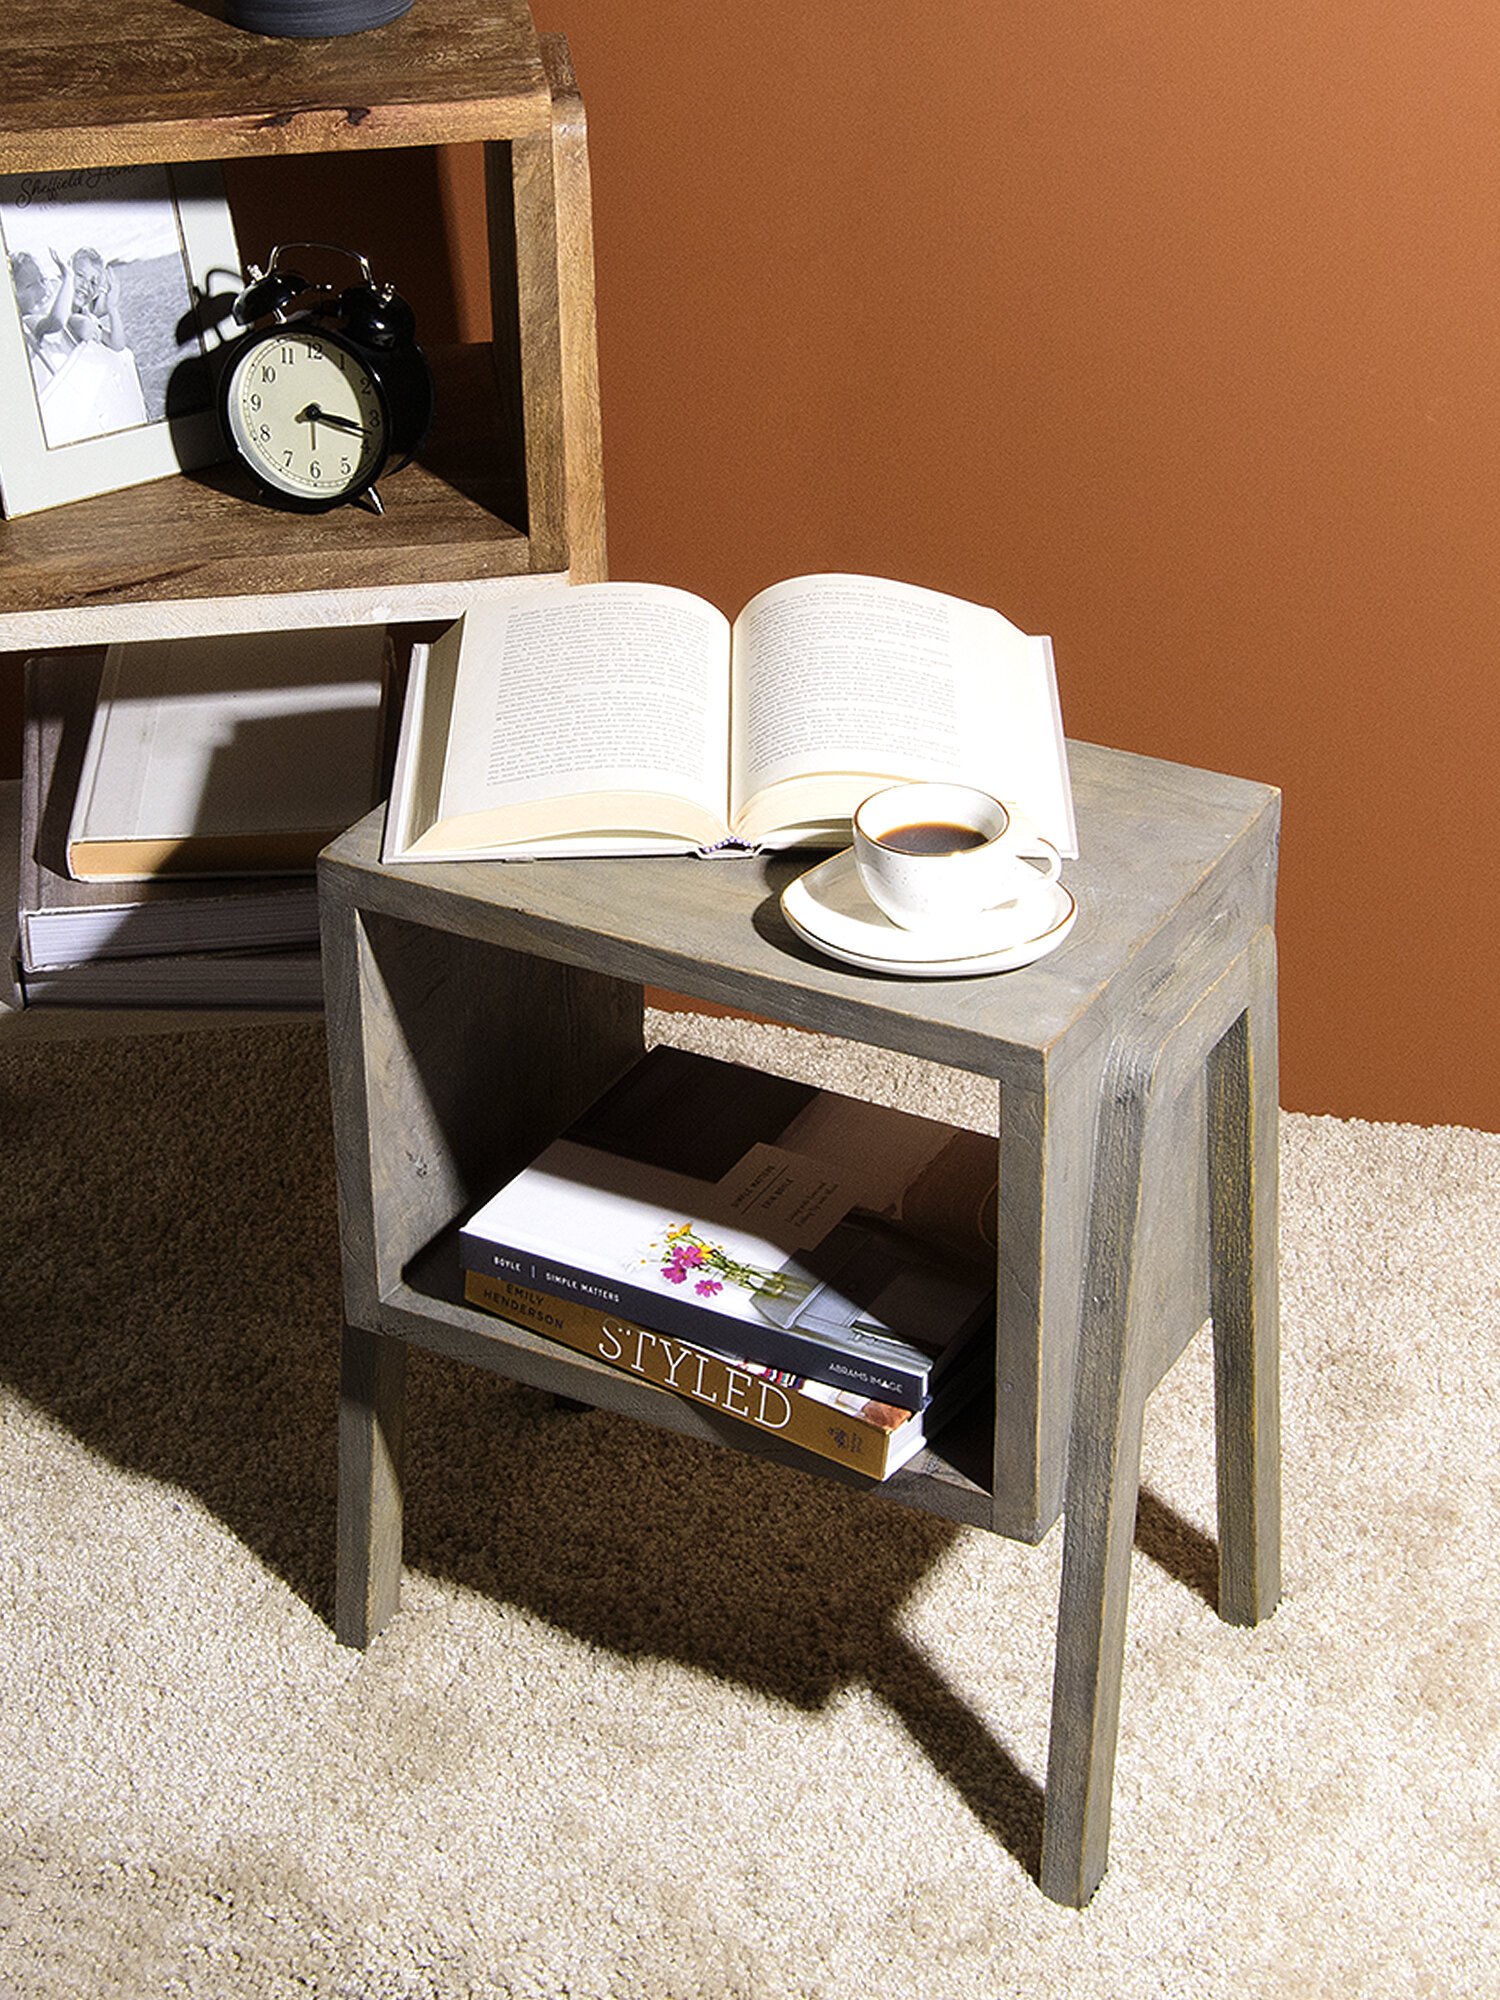 Adorable Style Oak Effect 2 Shelf Unit Side Table Sofa//Coffee//Bedside//Storage Trolly Table for Home,Living Room,Office Furniture